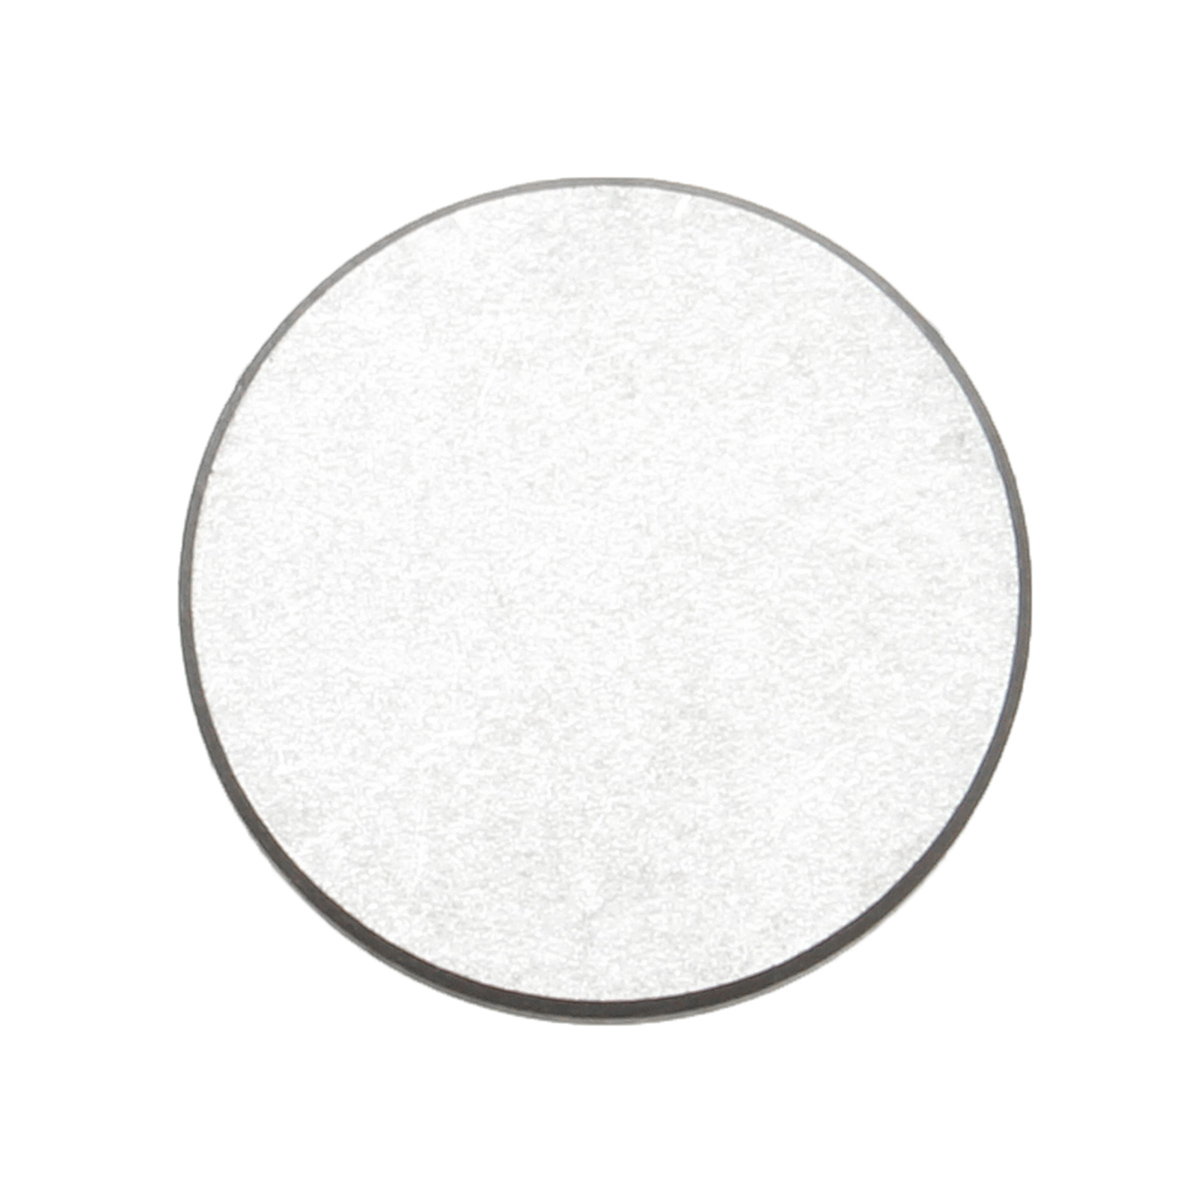 20x2mm Molybdenum Laser Reflection Lens High Power For Engraving Machine